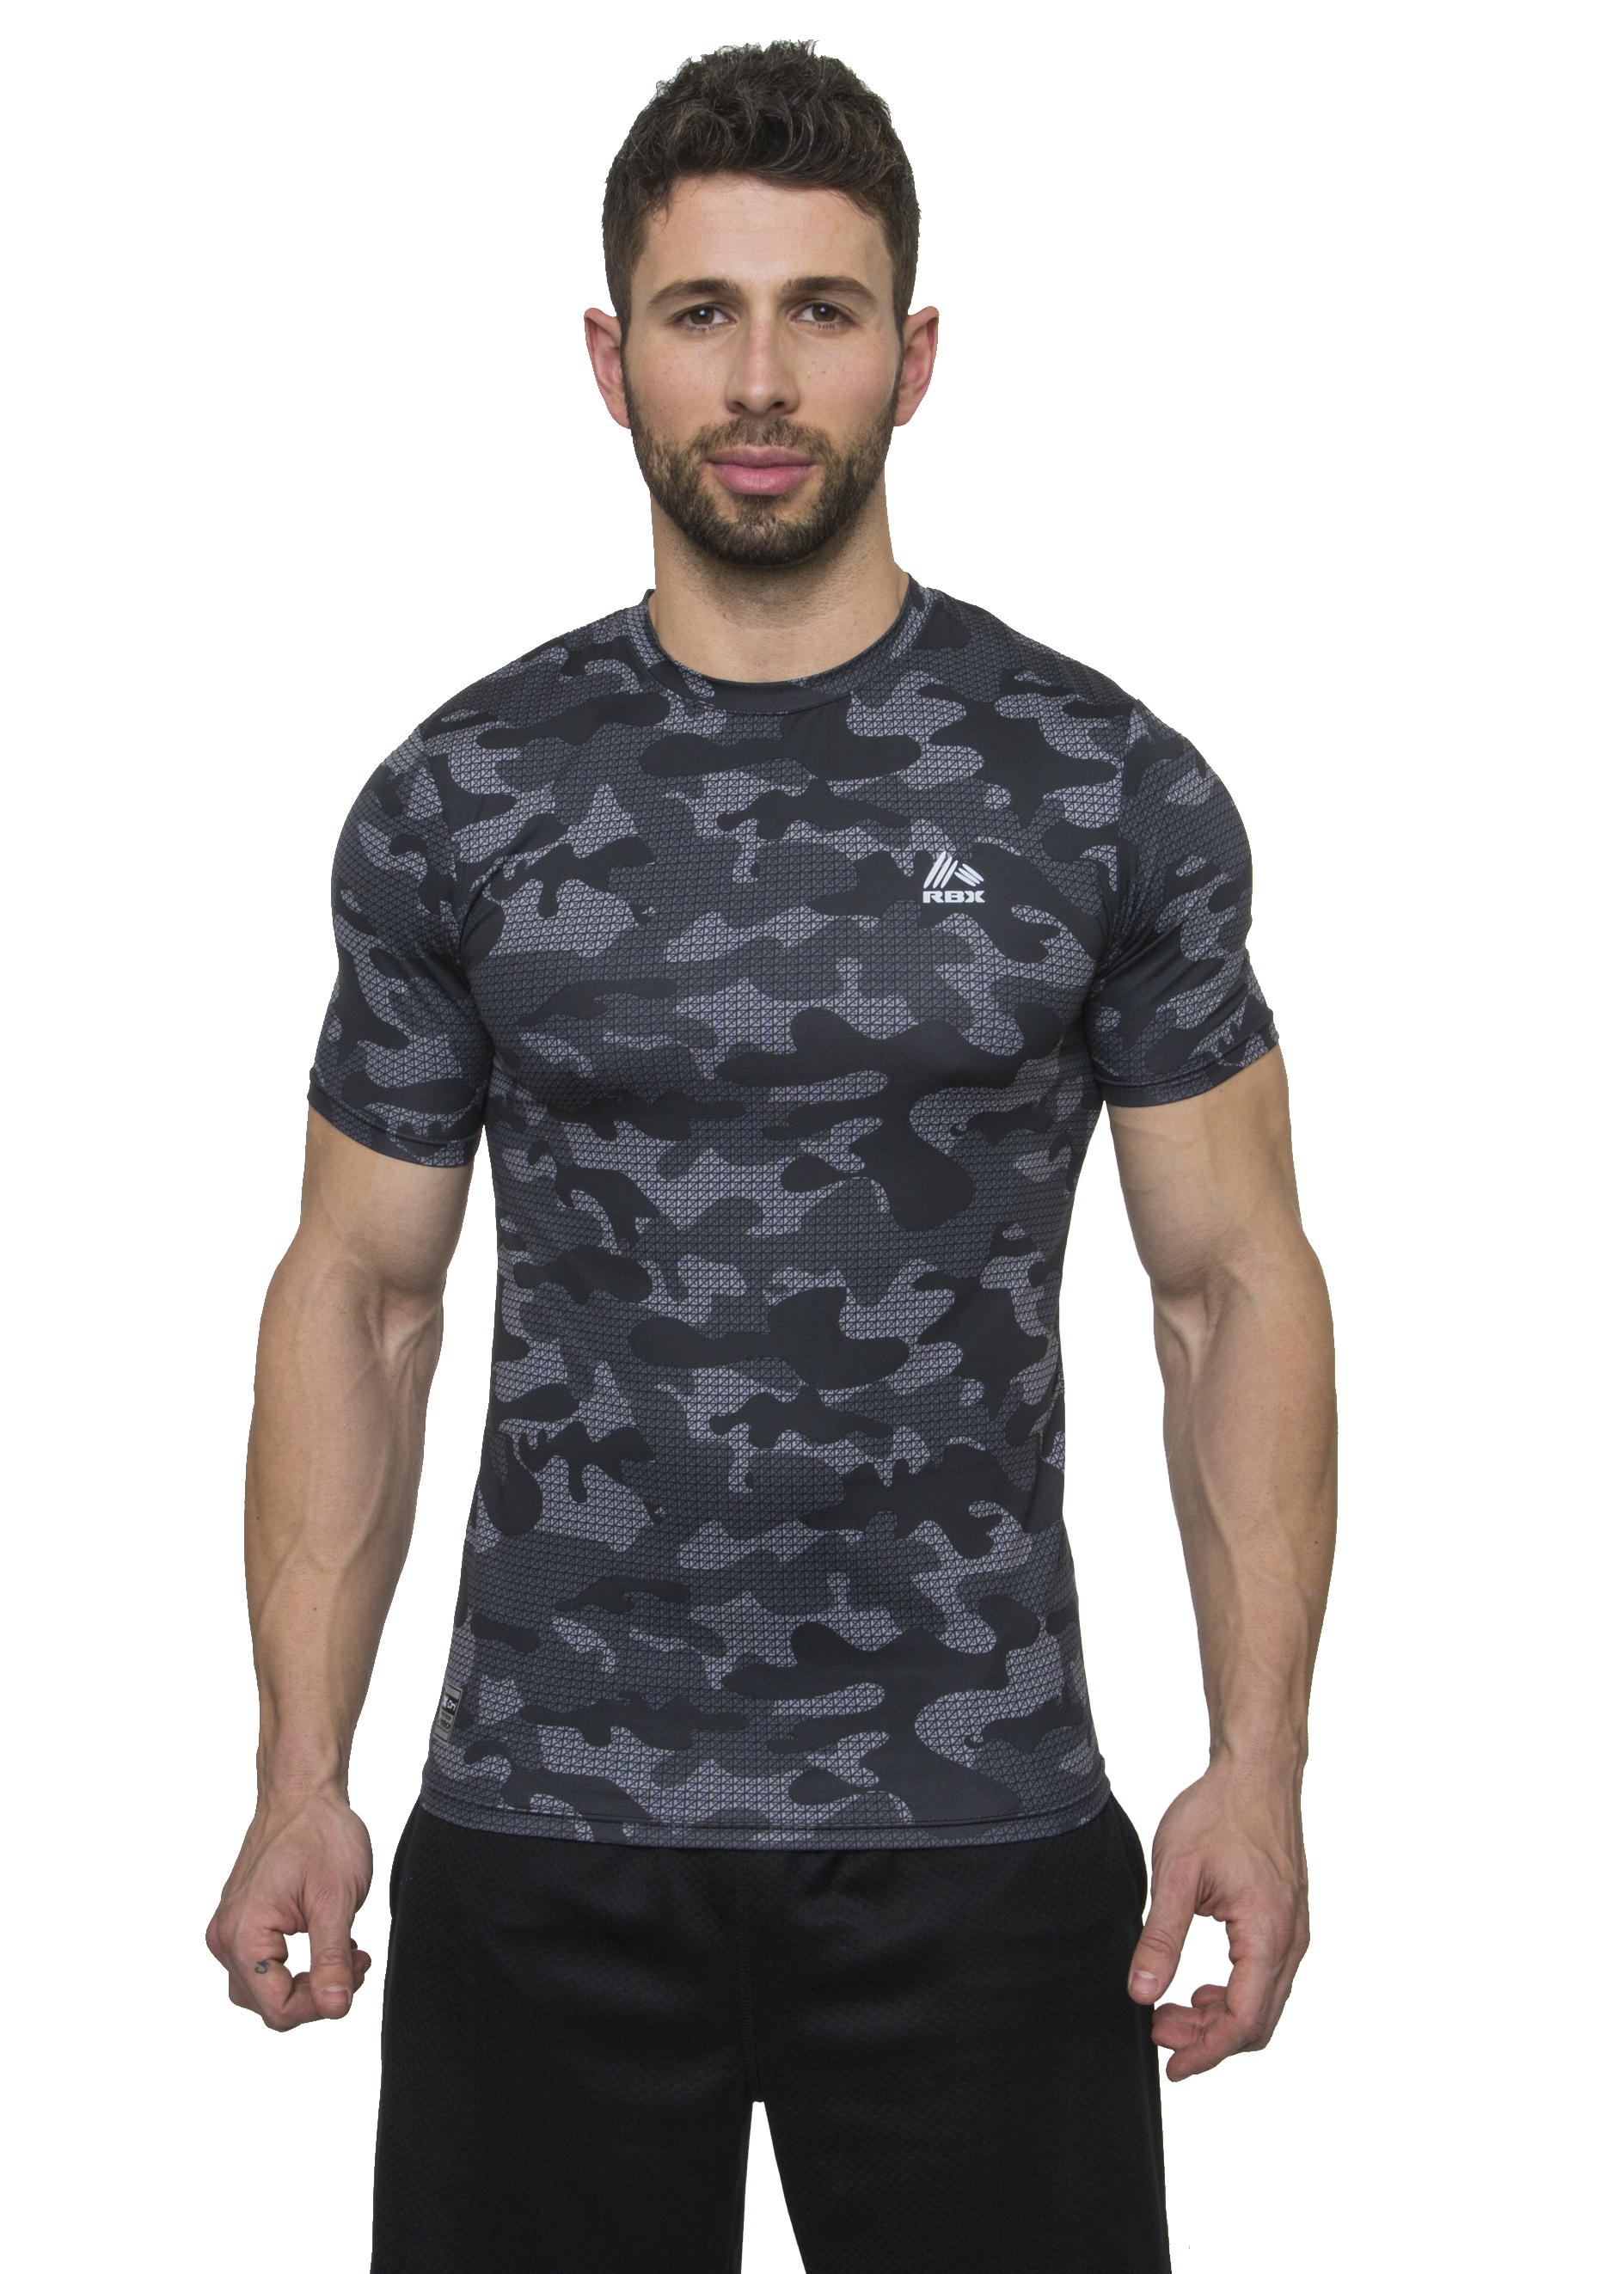 Rbx active men 39 s camo printed short sleeve compression t for Compressed promotional t shirts